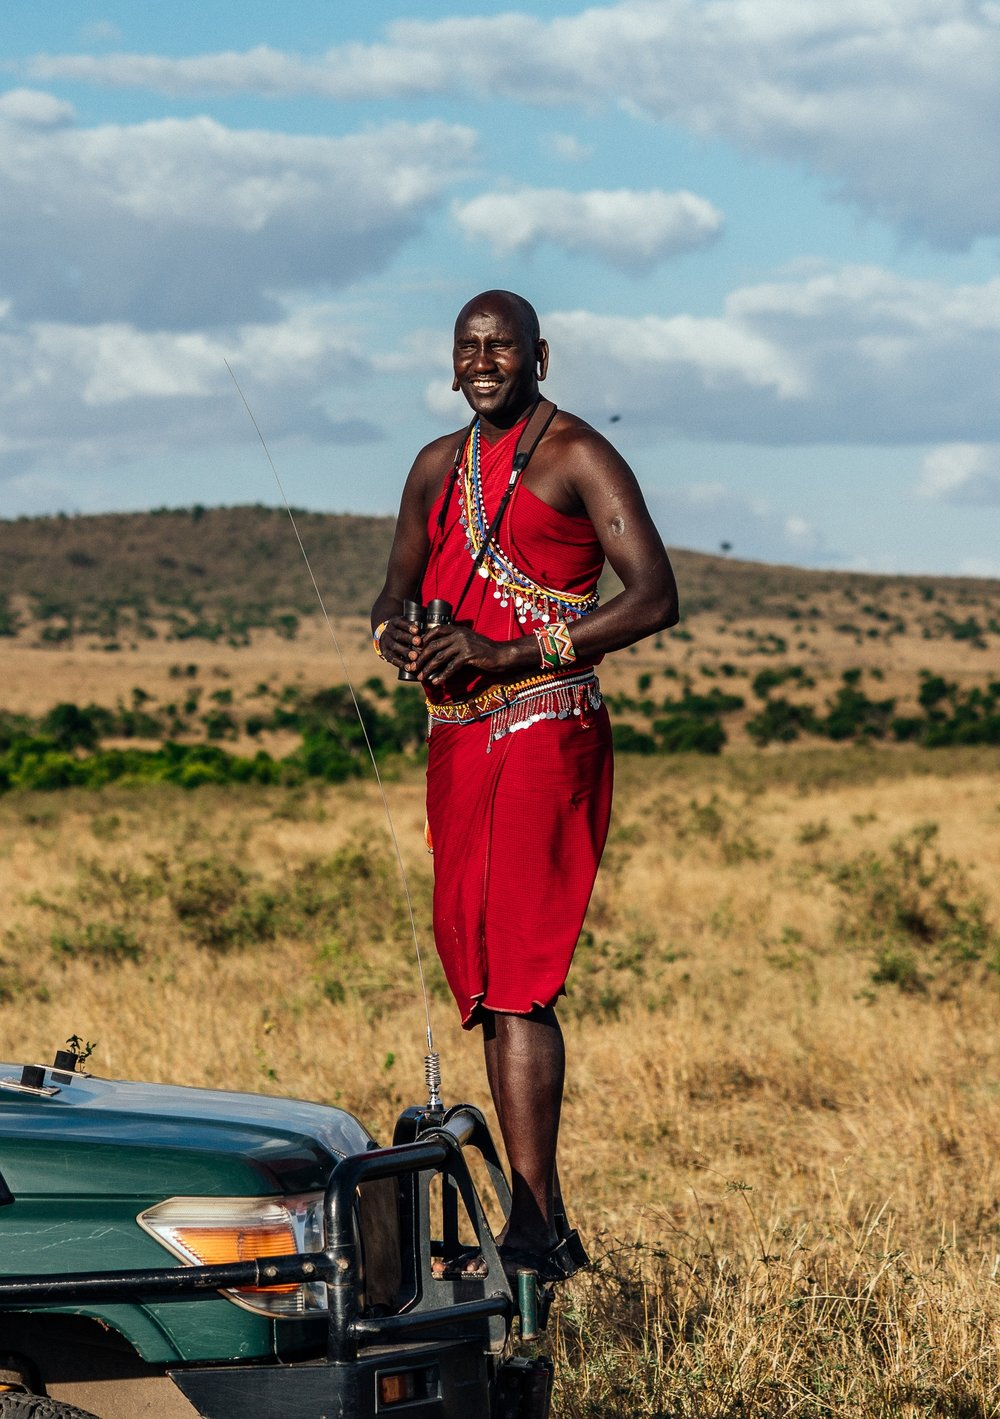 Matura - Maasai Guide at Cottras 1920s Safari Camp Ph. Dave Krugman